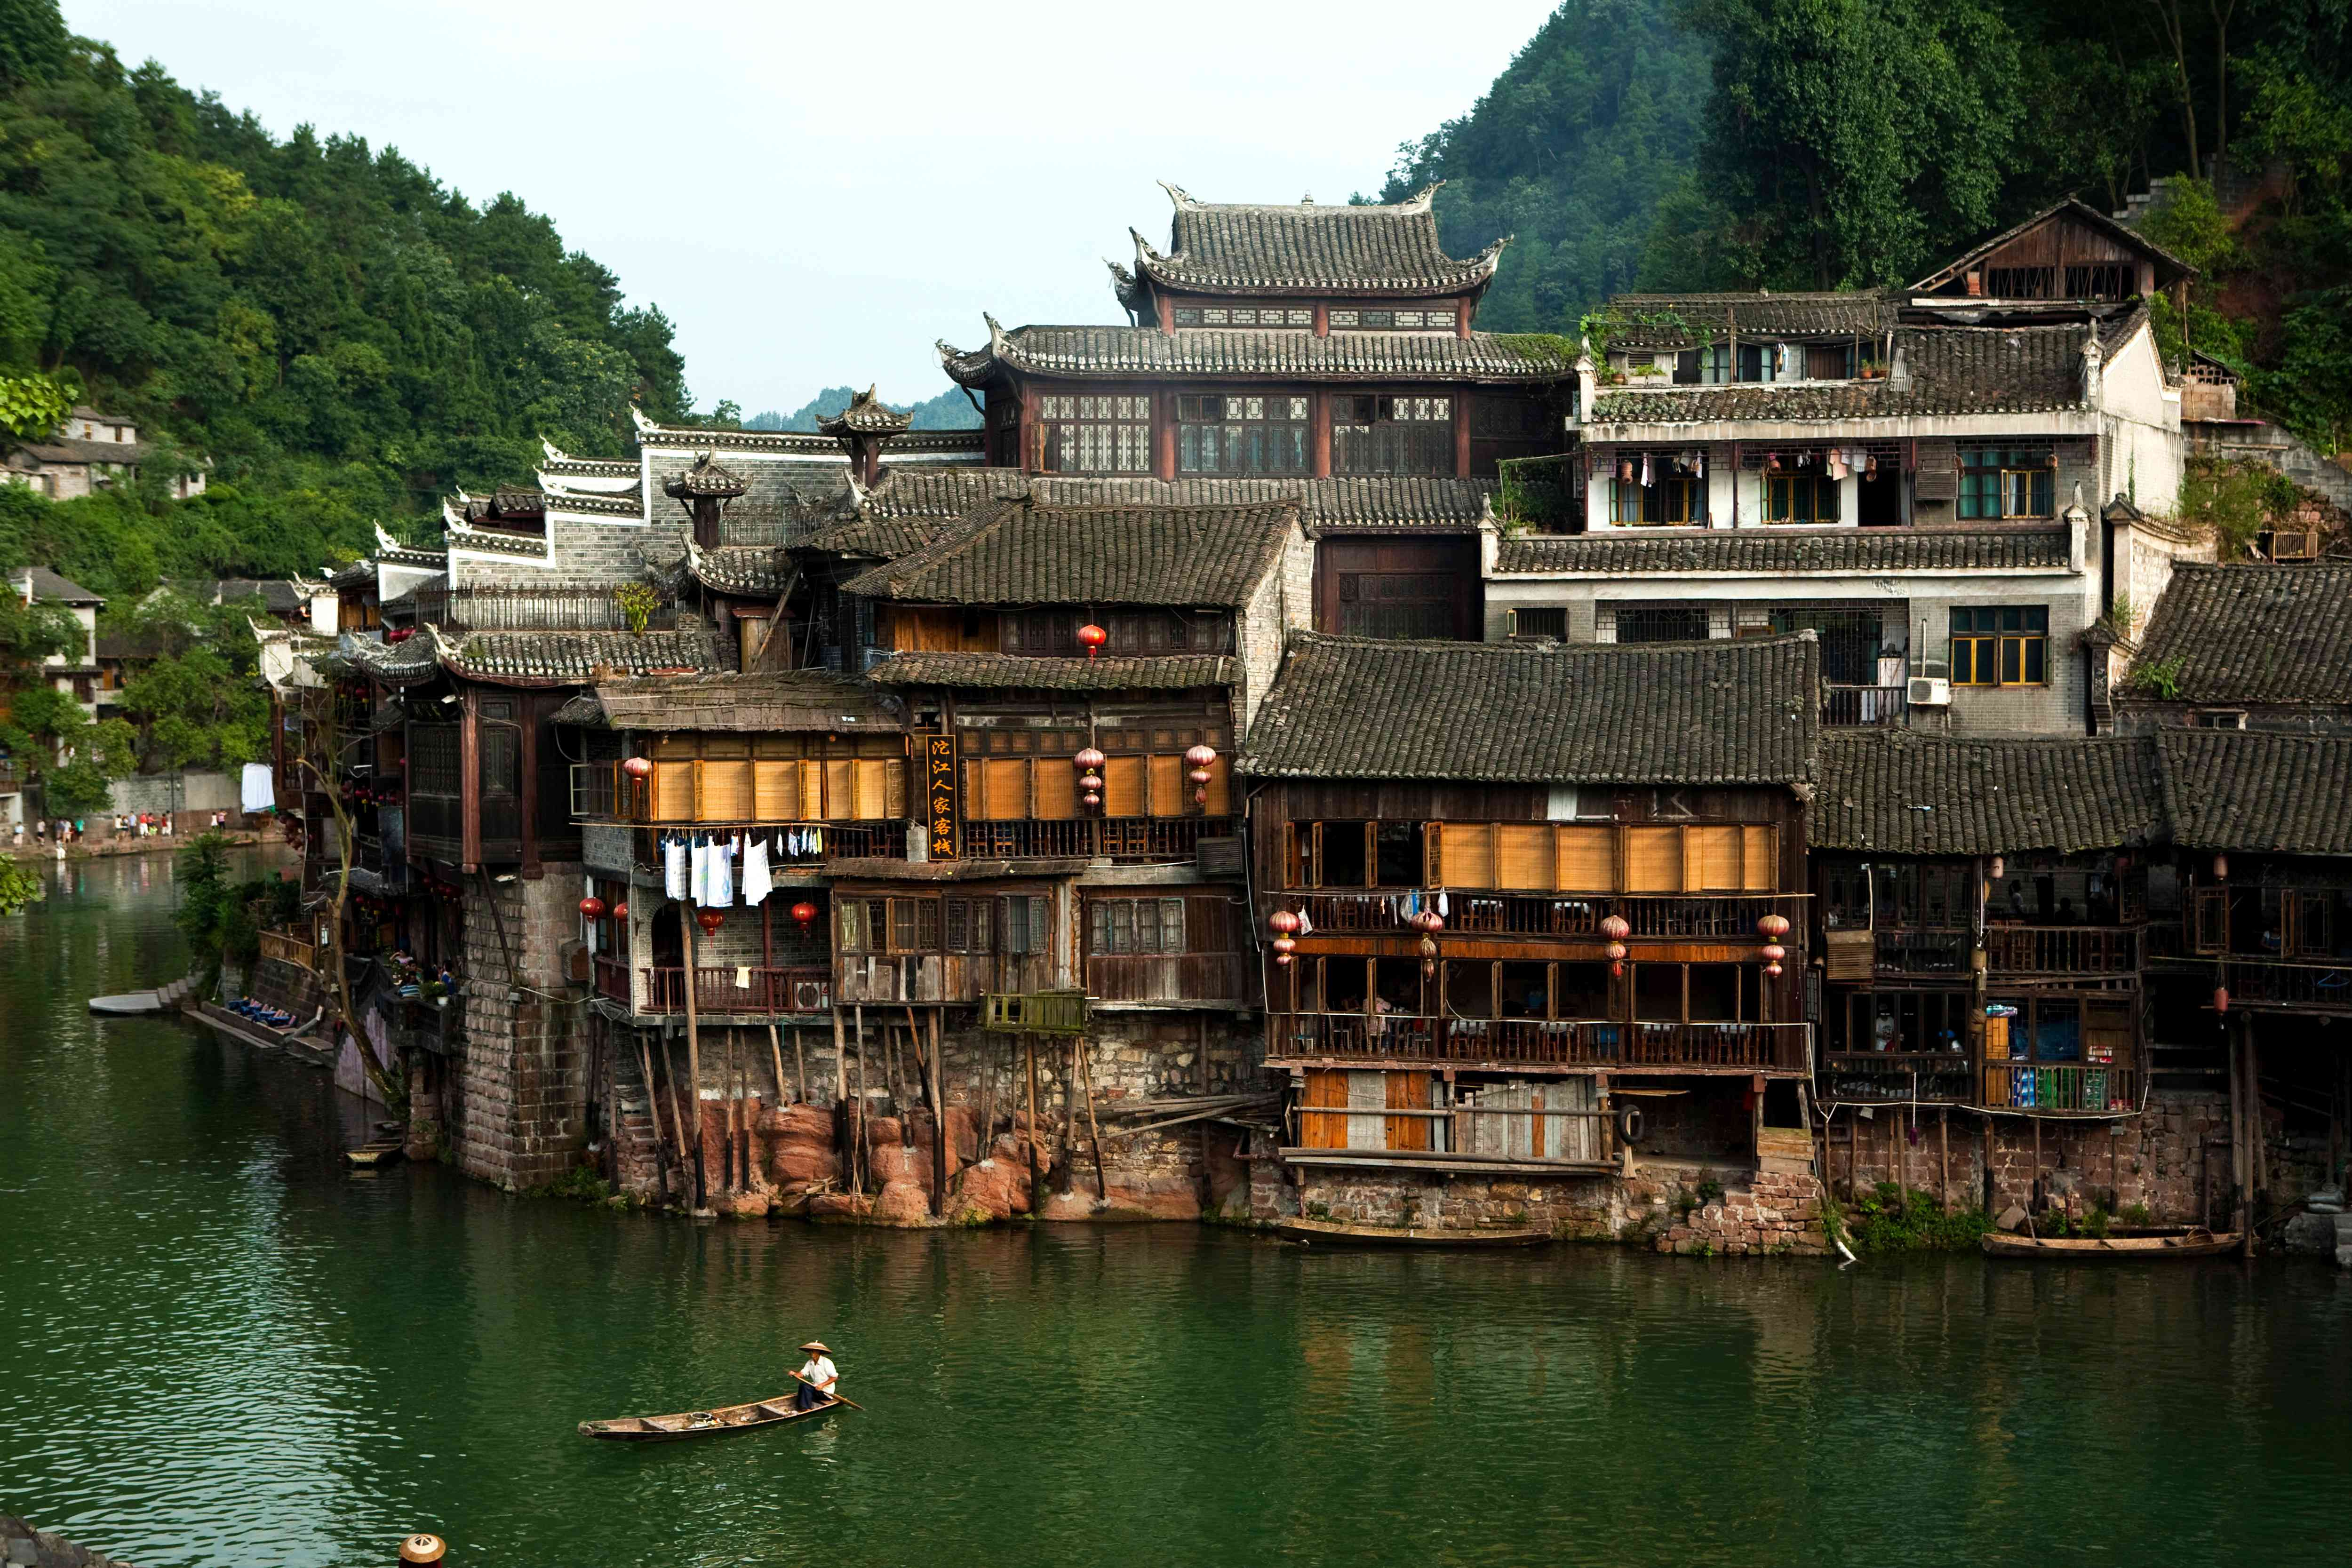 Fenghuang, one of the classic ancient river villages of Hunan, China